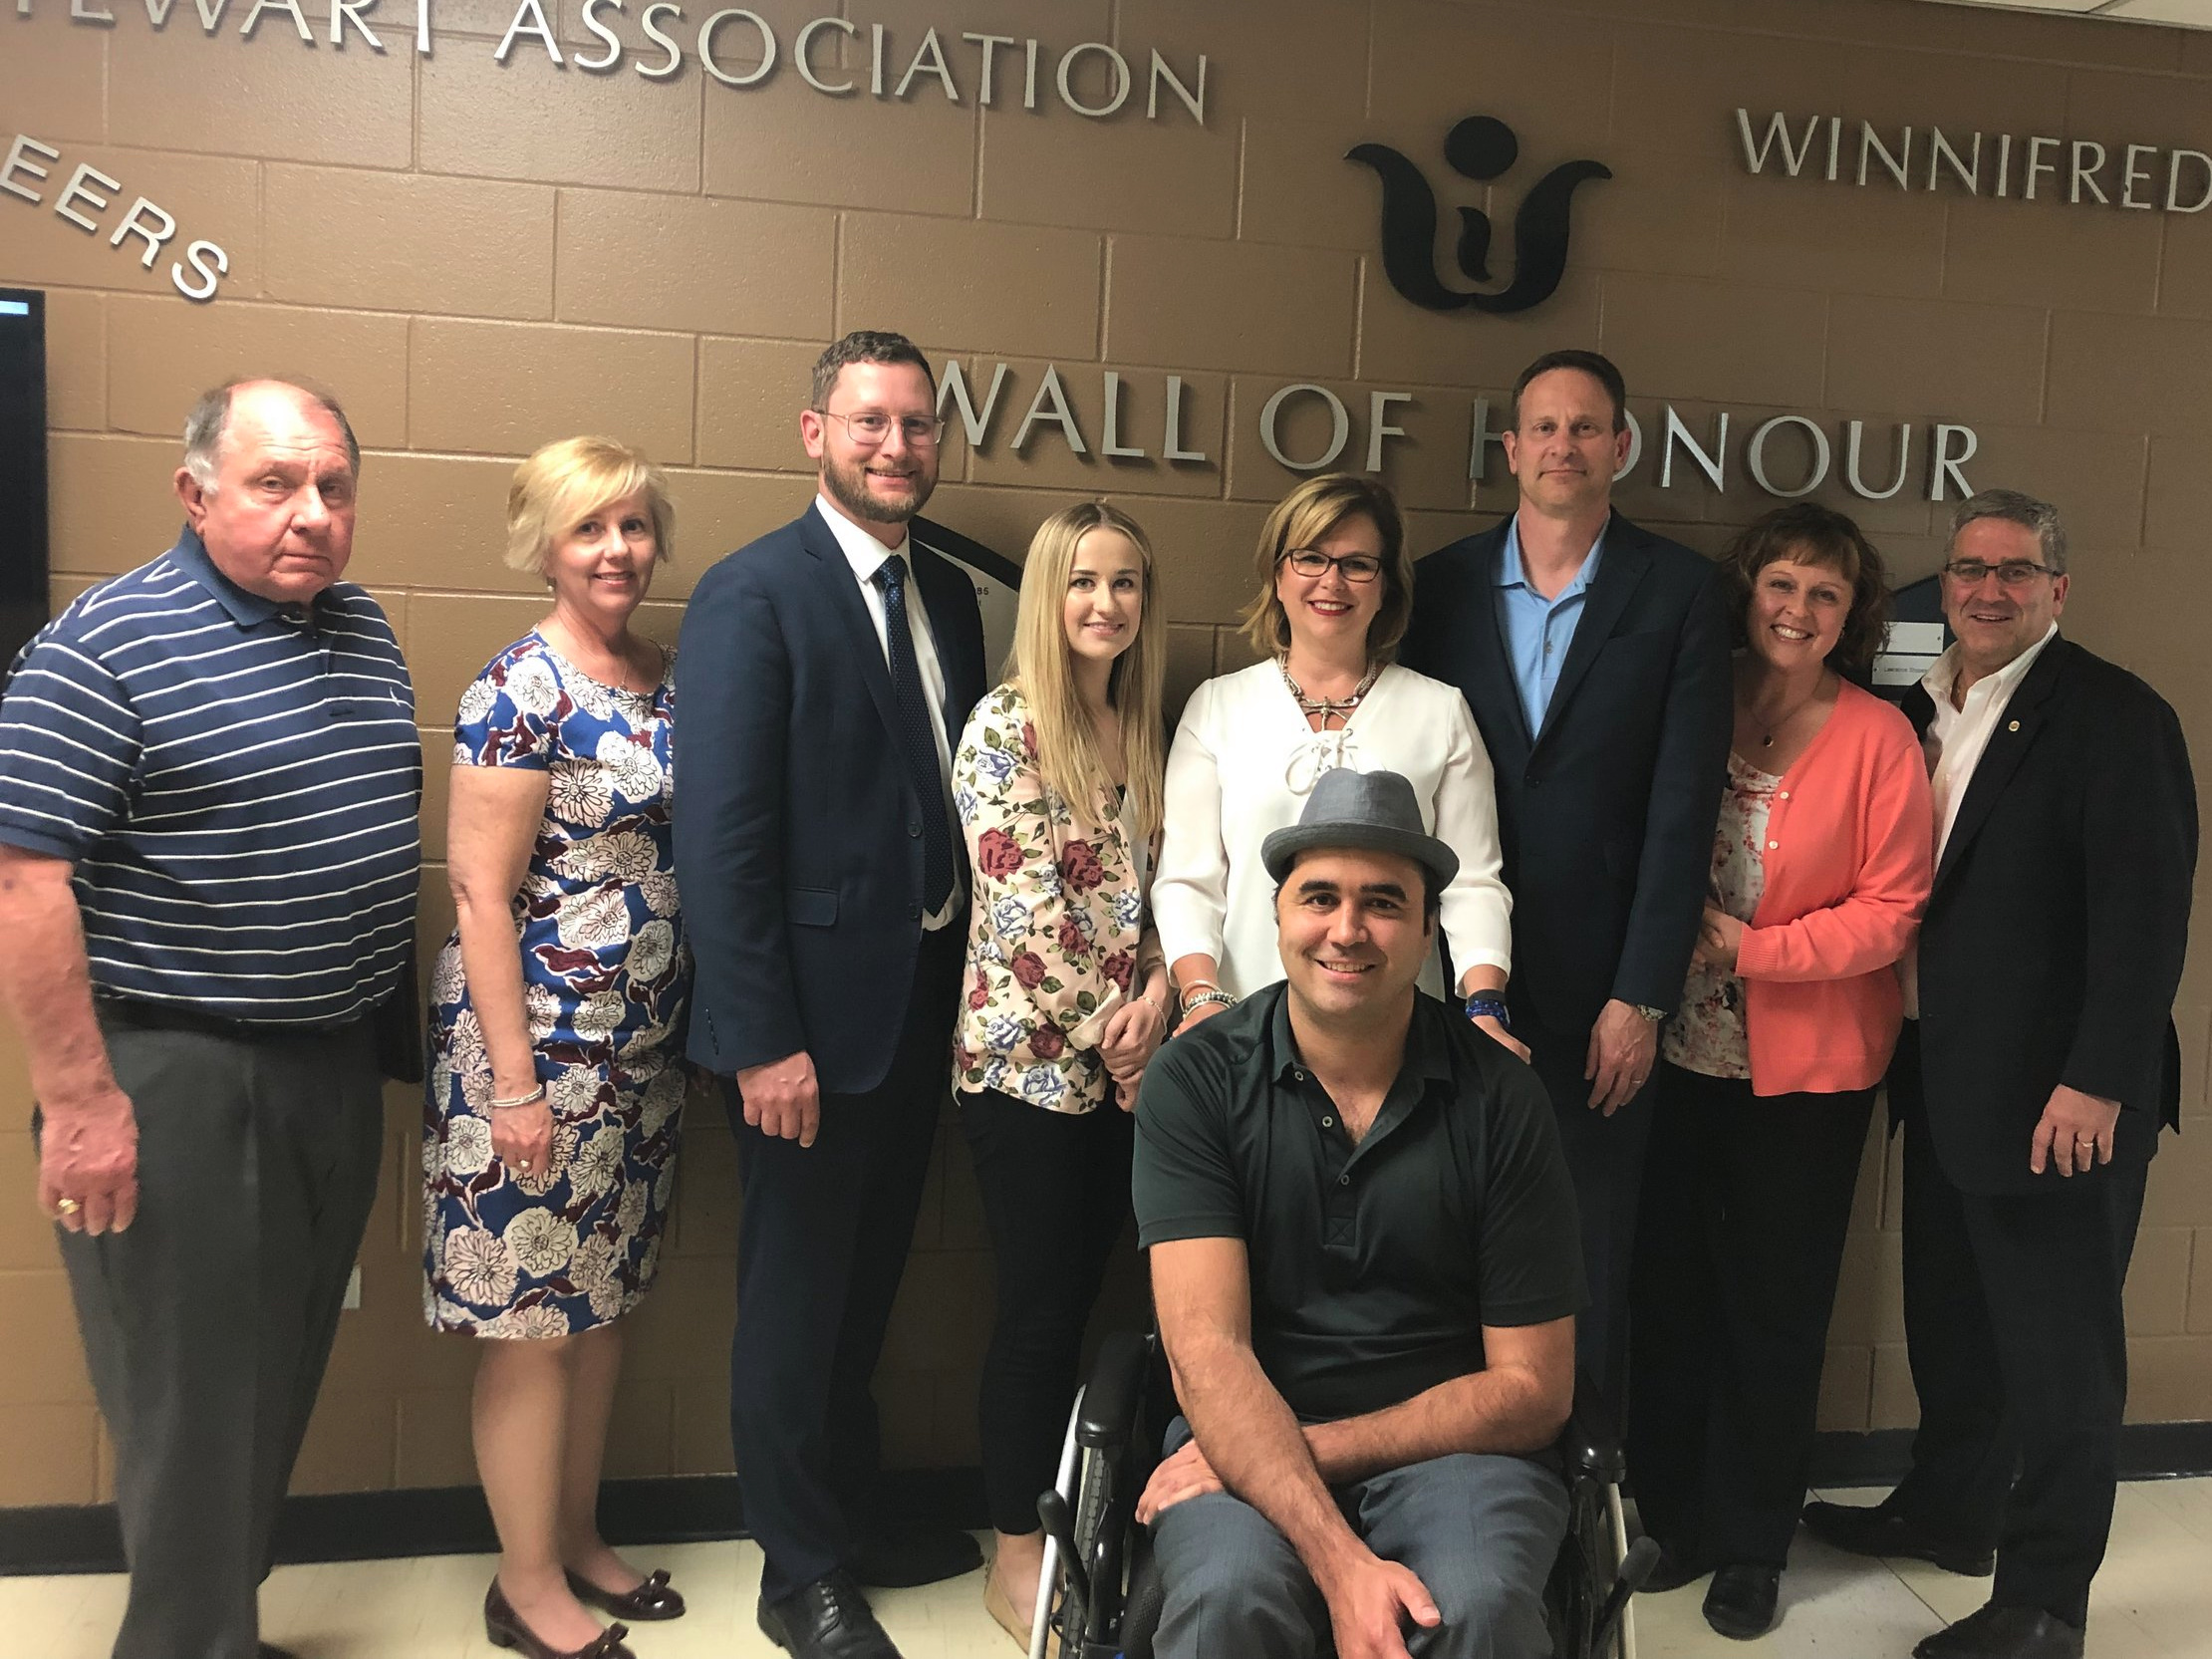 2019/2020 WSA Board Members from left: Stan Fisher, Patty Whiting, Timothy Jobs, Malinda Ivankovic, Chad Zima, Bea Bohm-Meyer, Leon Pfeiffer, Cindy Imppola, Paul Goguen (with regret: Gord Rajewski, Kevin Guile)